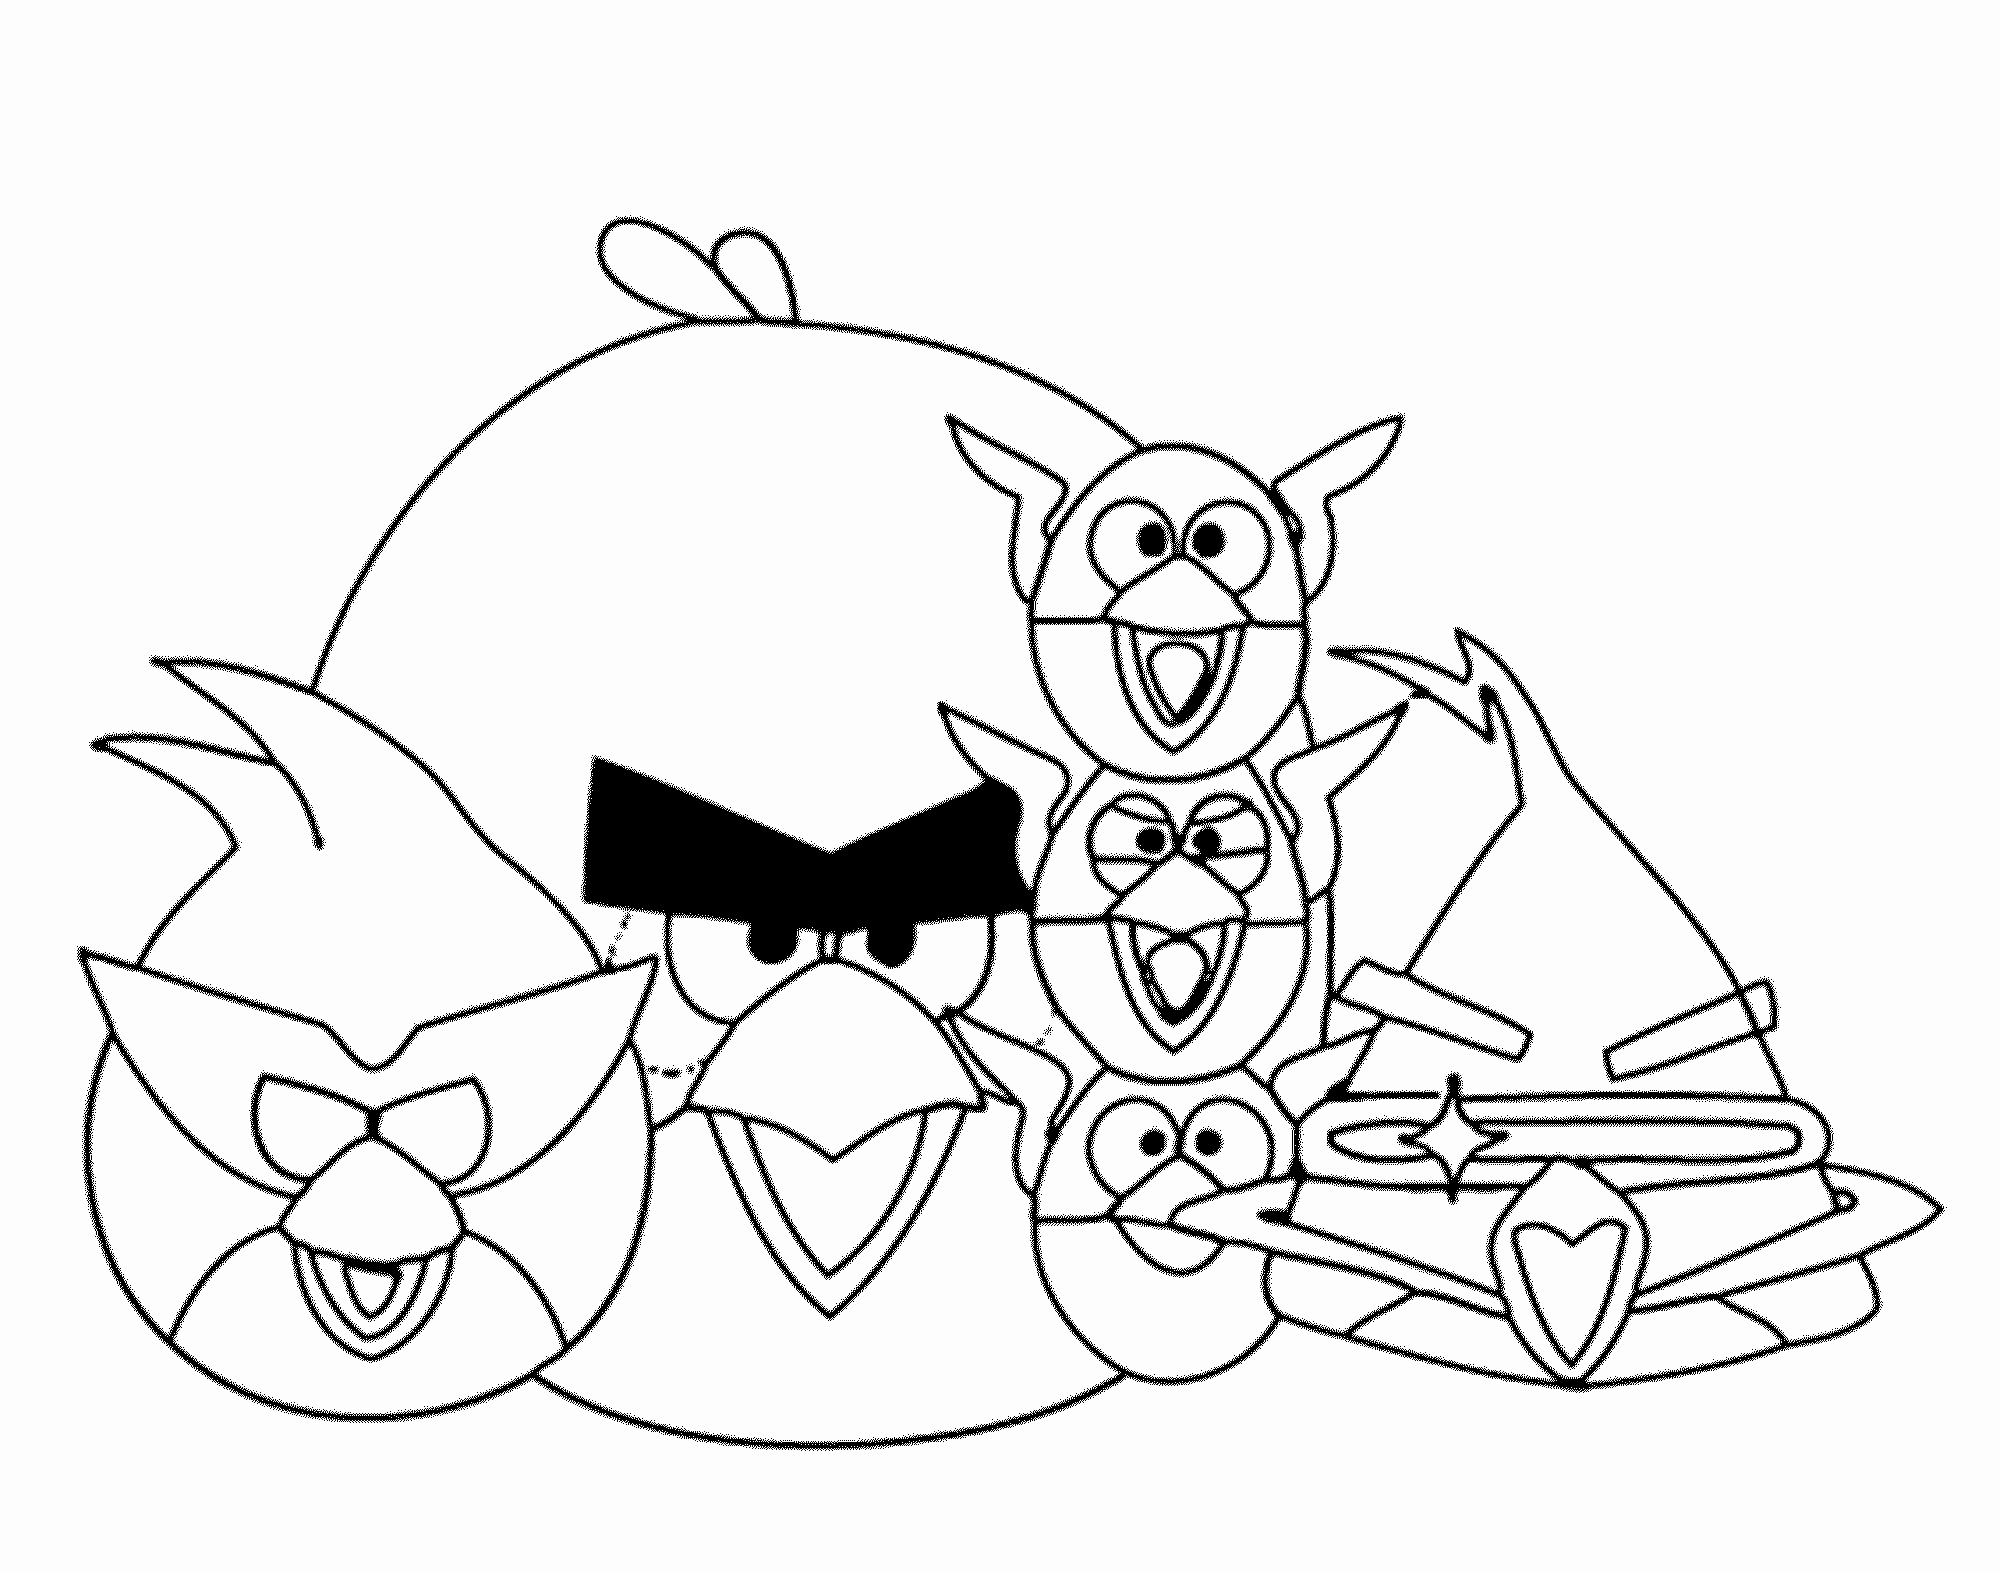 2000x1572 Crayola Giant Coloring Pages Luxury Coloring Pages Star Wars